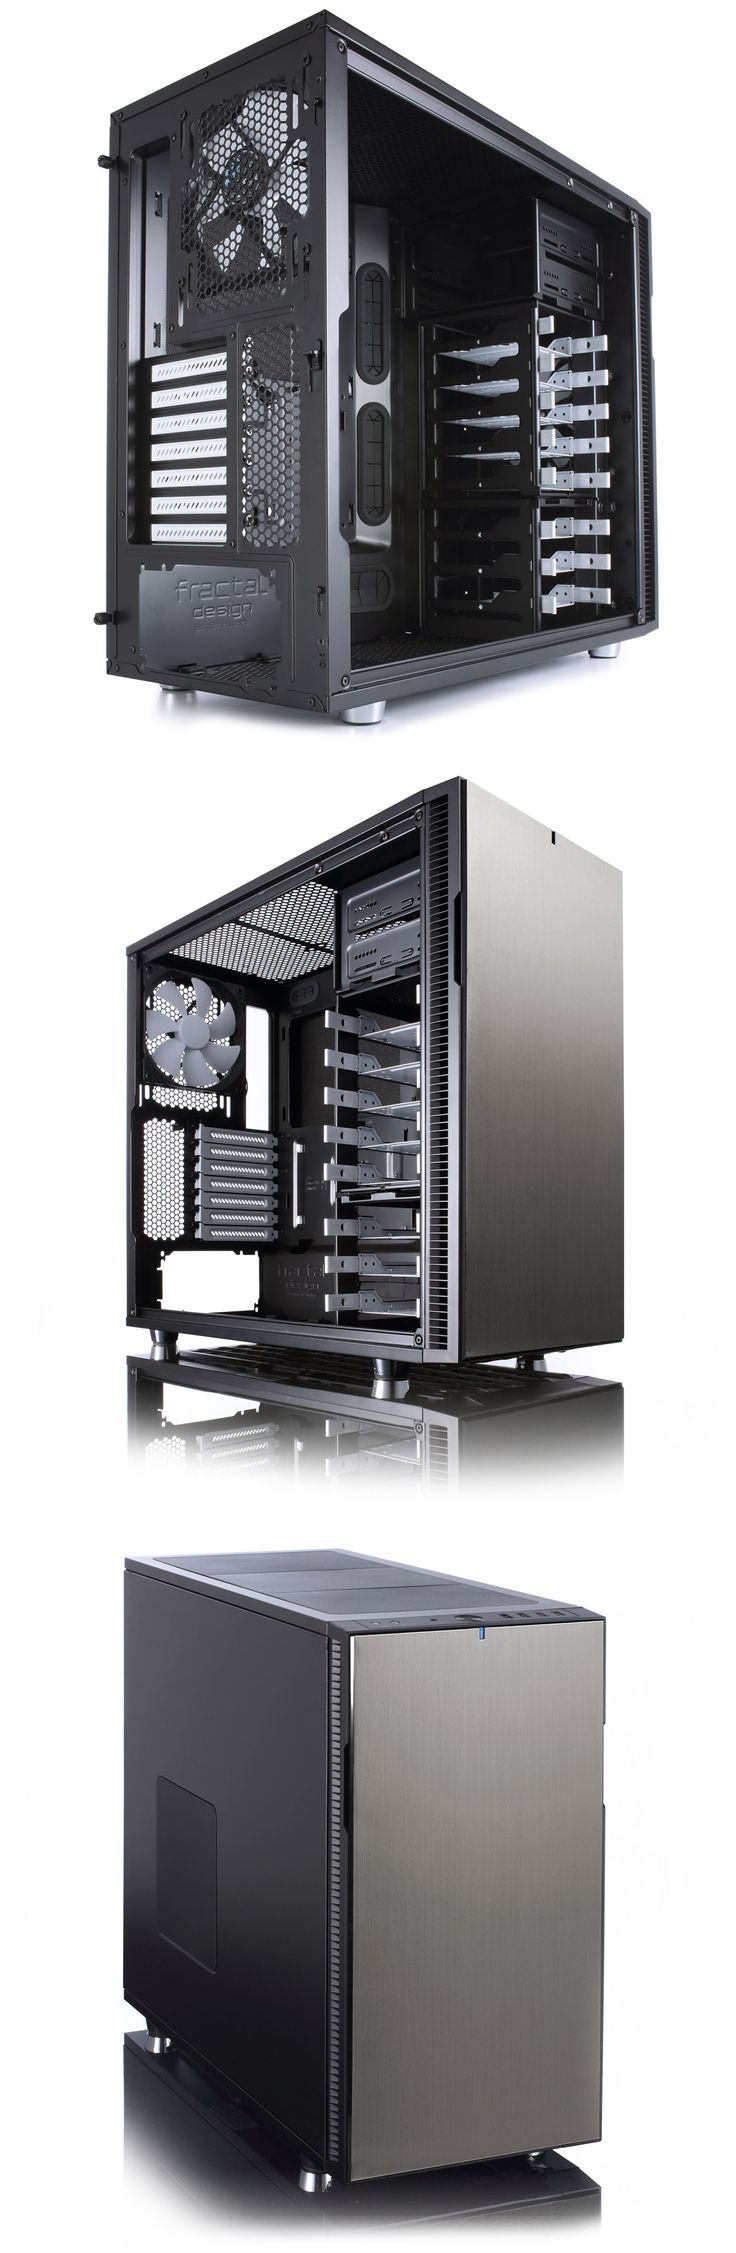 Fractal Design Define R5 Mid Tower Titanium [FD-CA-DEFR5-TI] : PC Case Gear